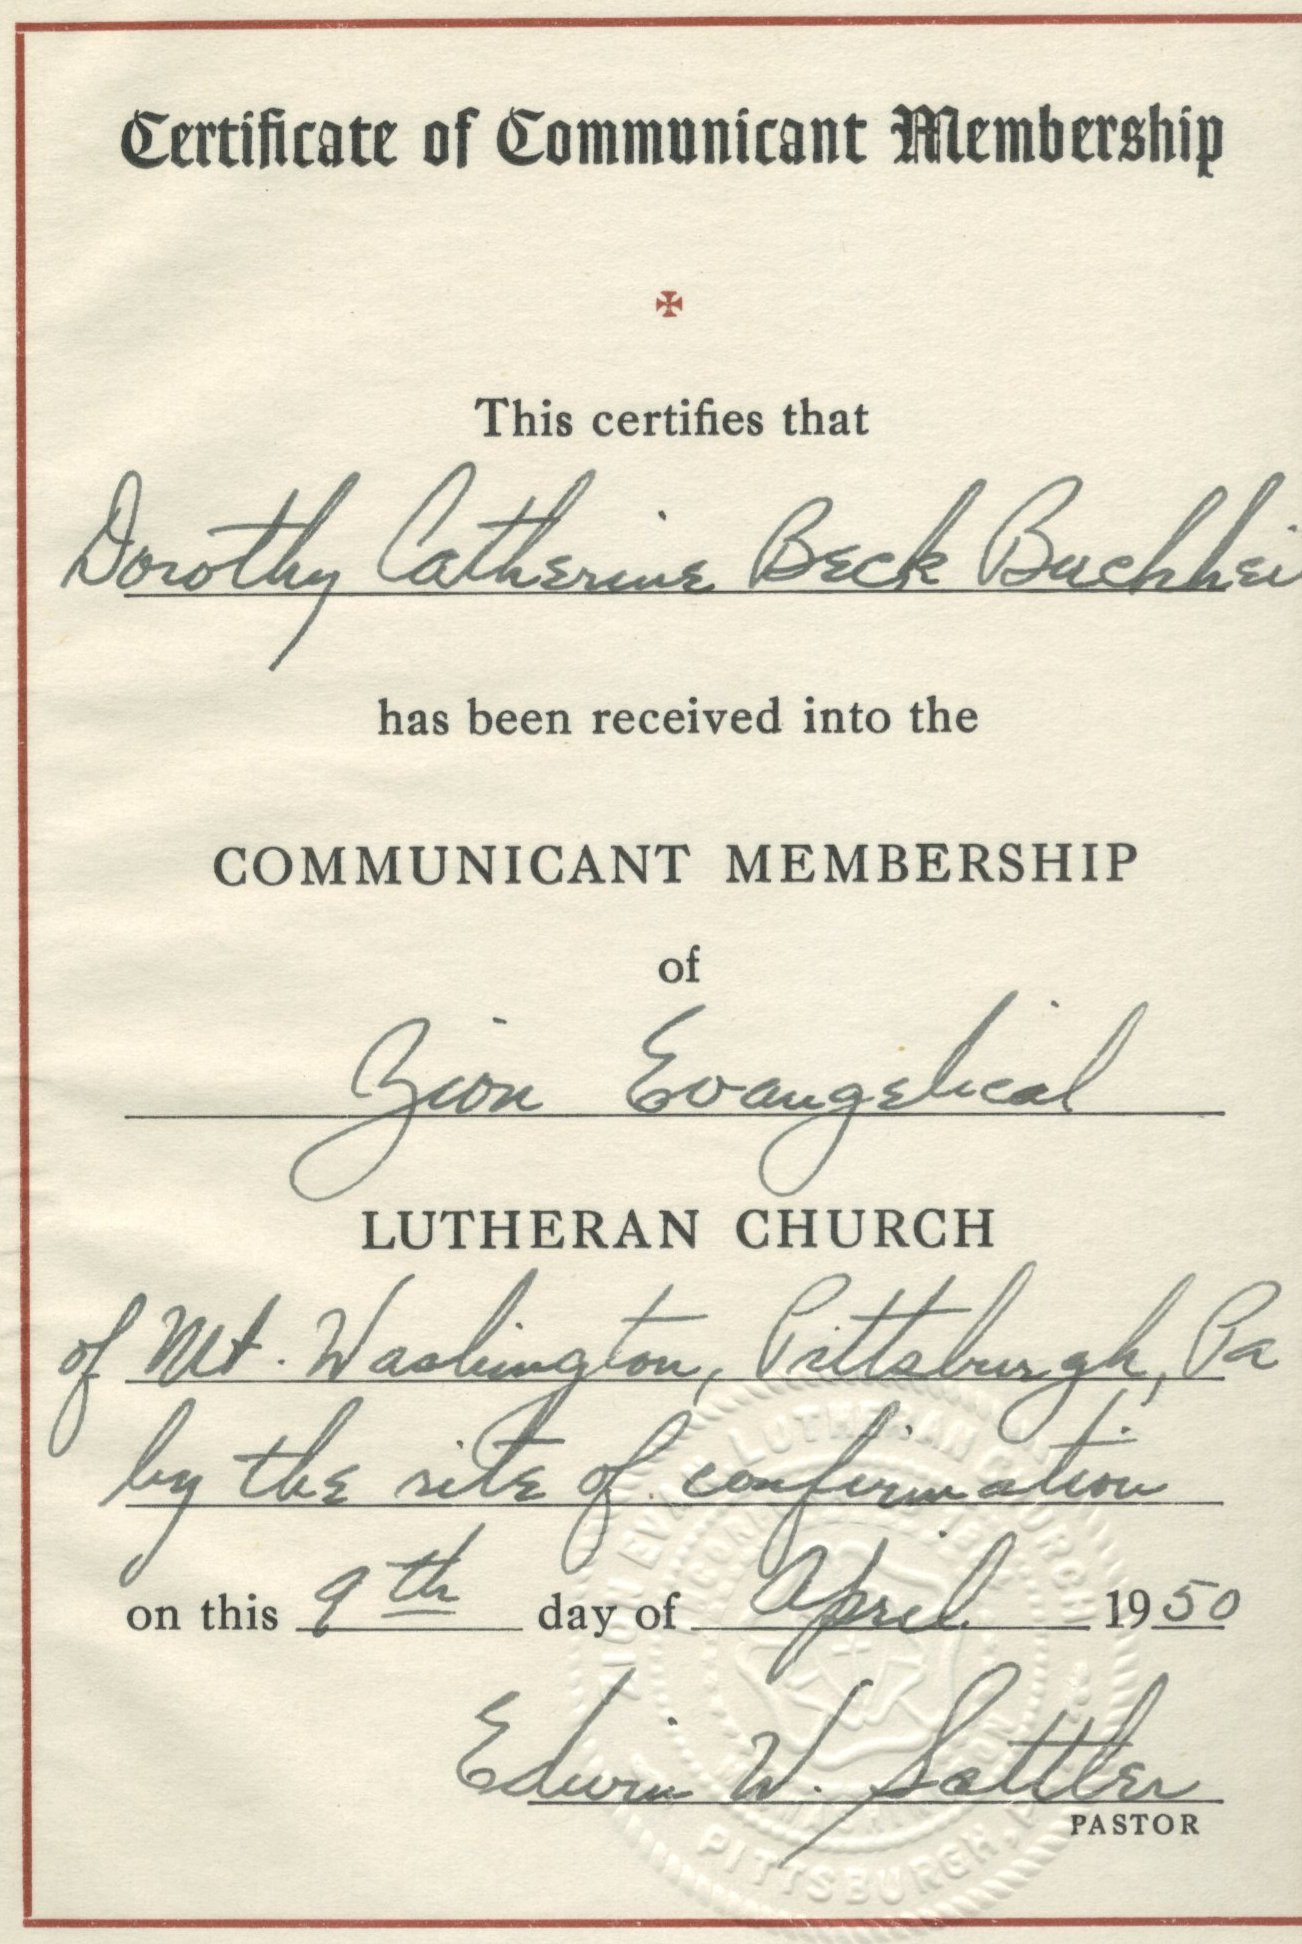 Buchheit history online view confirmation buchheit dorothy catherine beck certificate of confirmation 1betcityfo Images